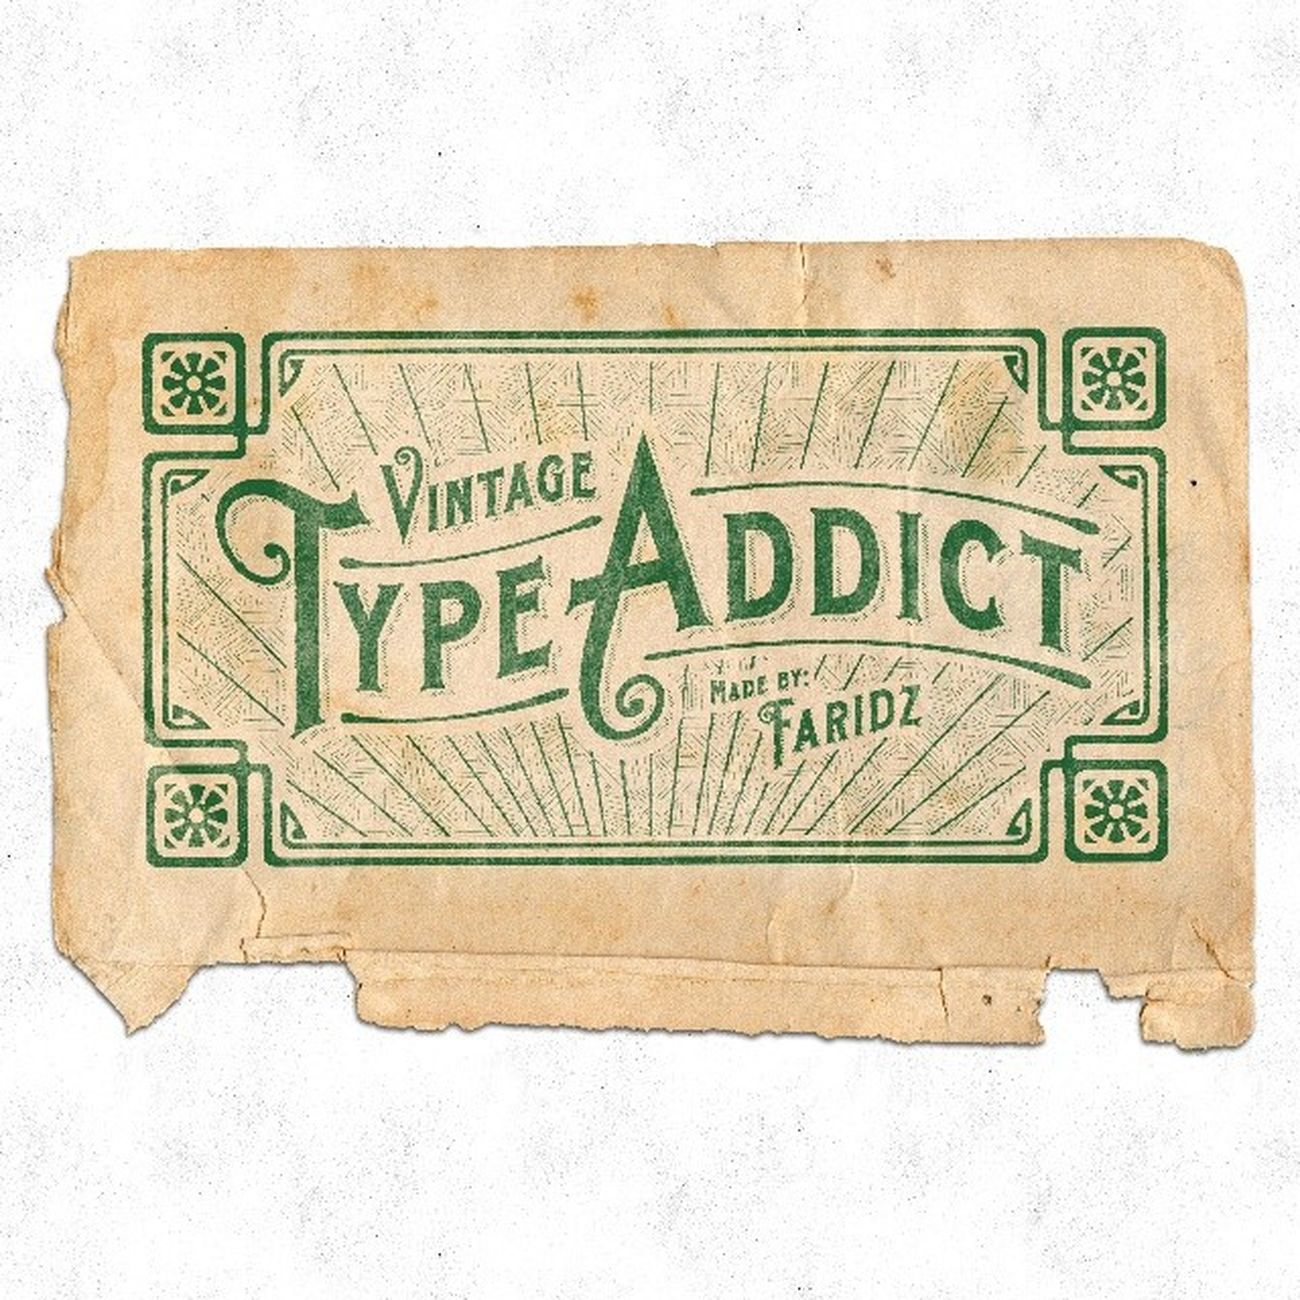 My first try on this kind of approach. Any feedback or comments is very much appreciated. Typography Vintage Vintagetype Typework dailytype dailylettering Lettering letterhead vintagefont typeverything typespire Typework